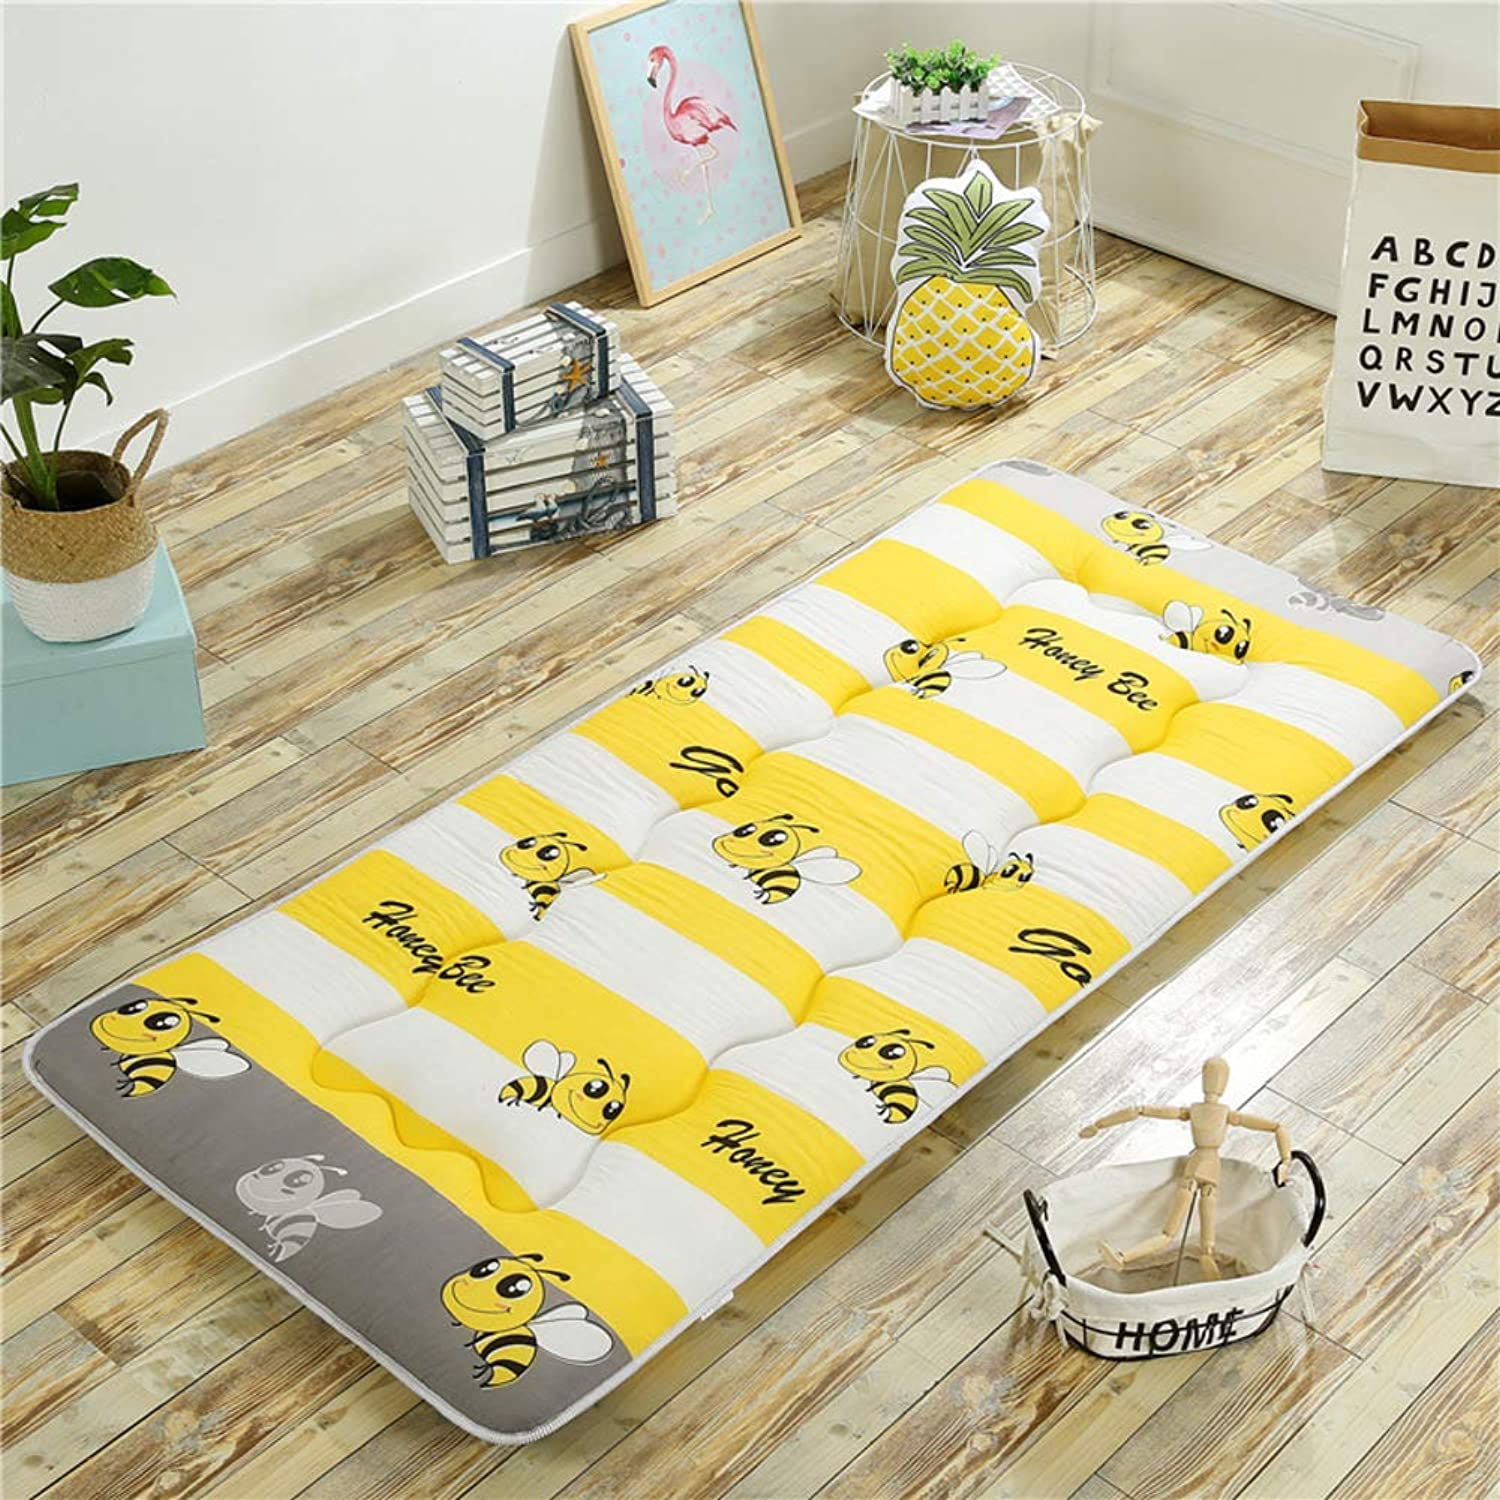 Tatami Mattress, Tatami Floor mat, Japanese futon Topper Traditional Foldable Breathable Soft Thicken Double Sleeping pad -A 100x200cm(39x79inch)